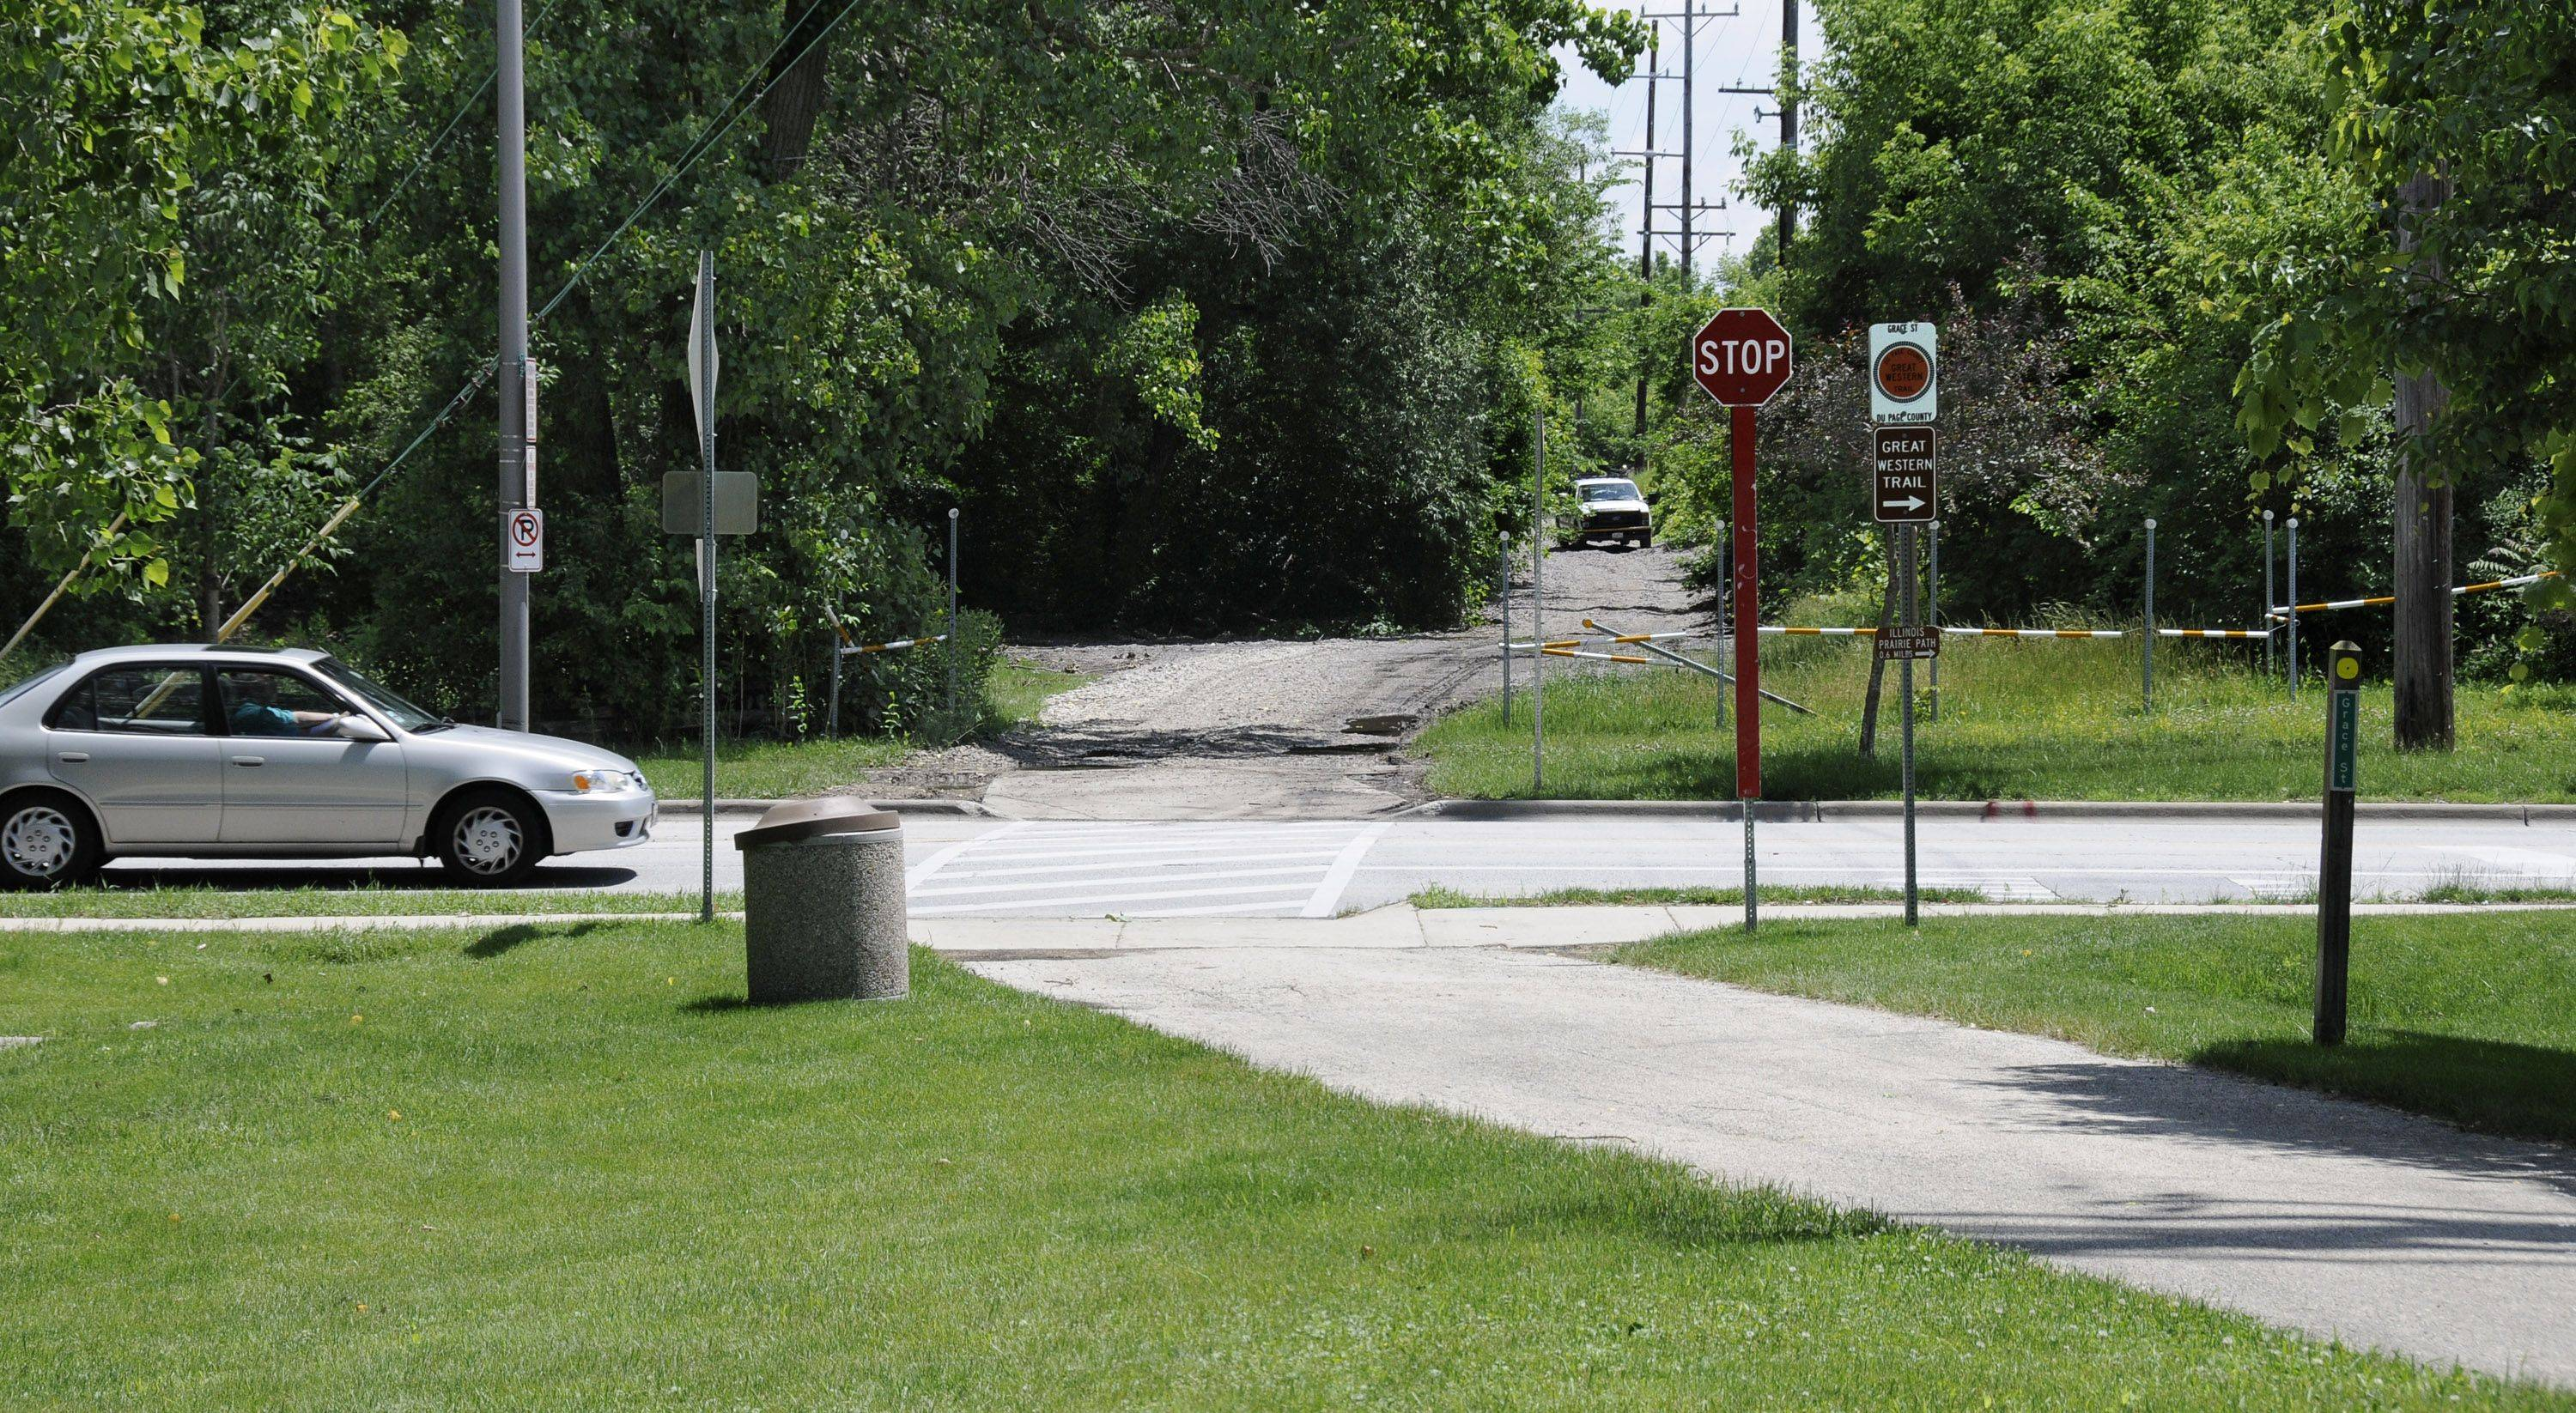 Great Western Trail users in Lombard now have to turn south on Grace Street, cross railroad tracks at St. Charles Road, then turn left to continue on the trail. Three pedestrian bridges being designed will allow the trail to continue straight east over both streets and the Union Pacific Railroad tracks.